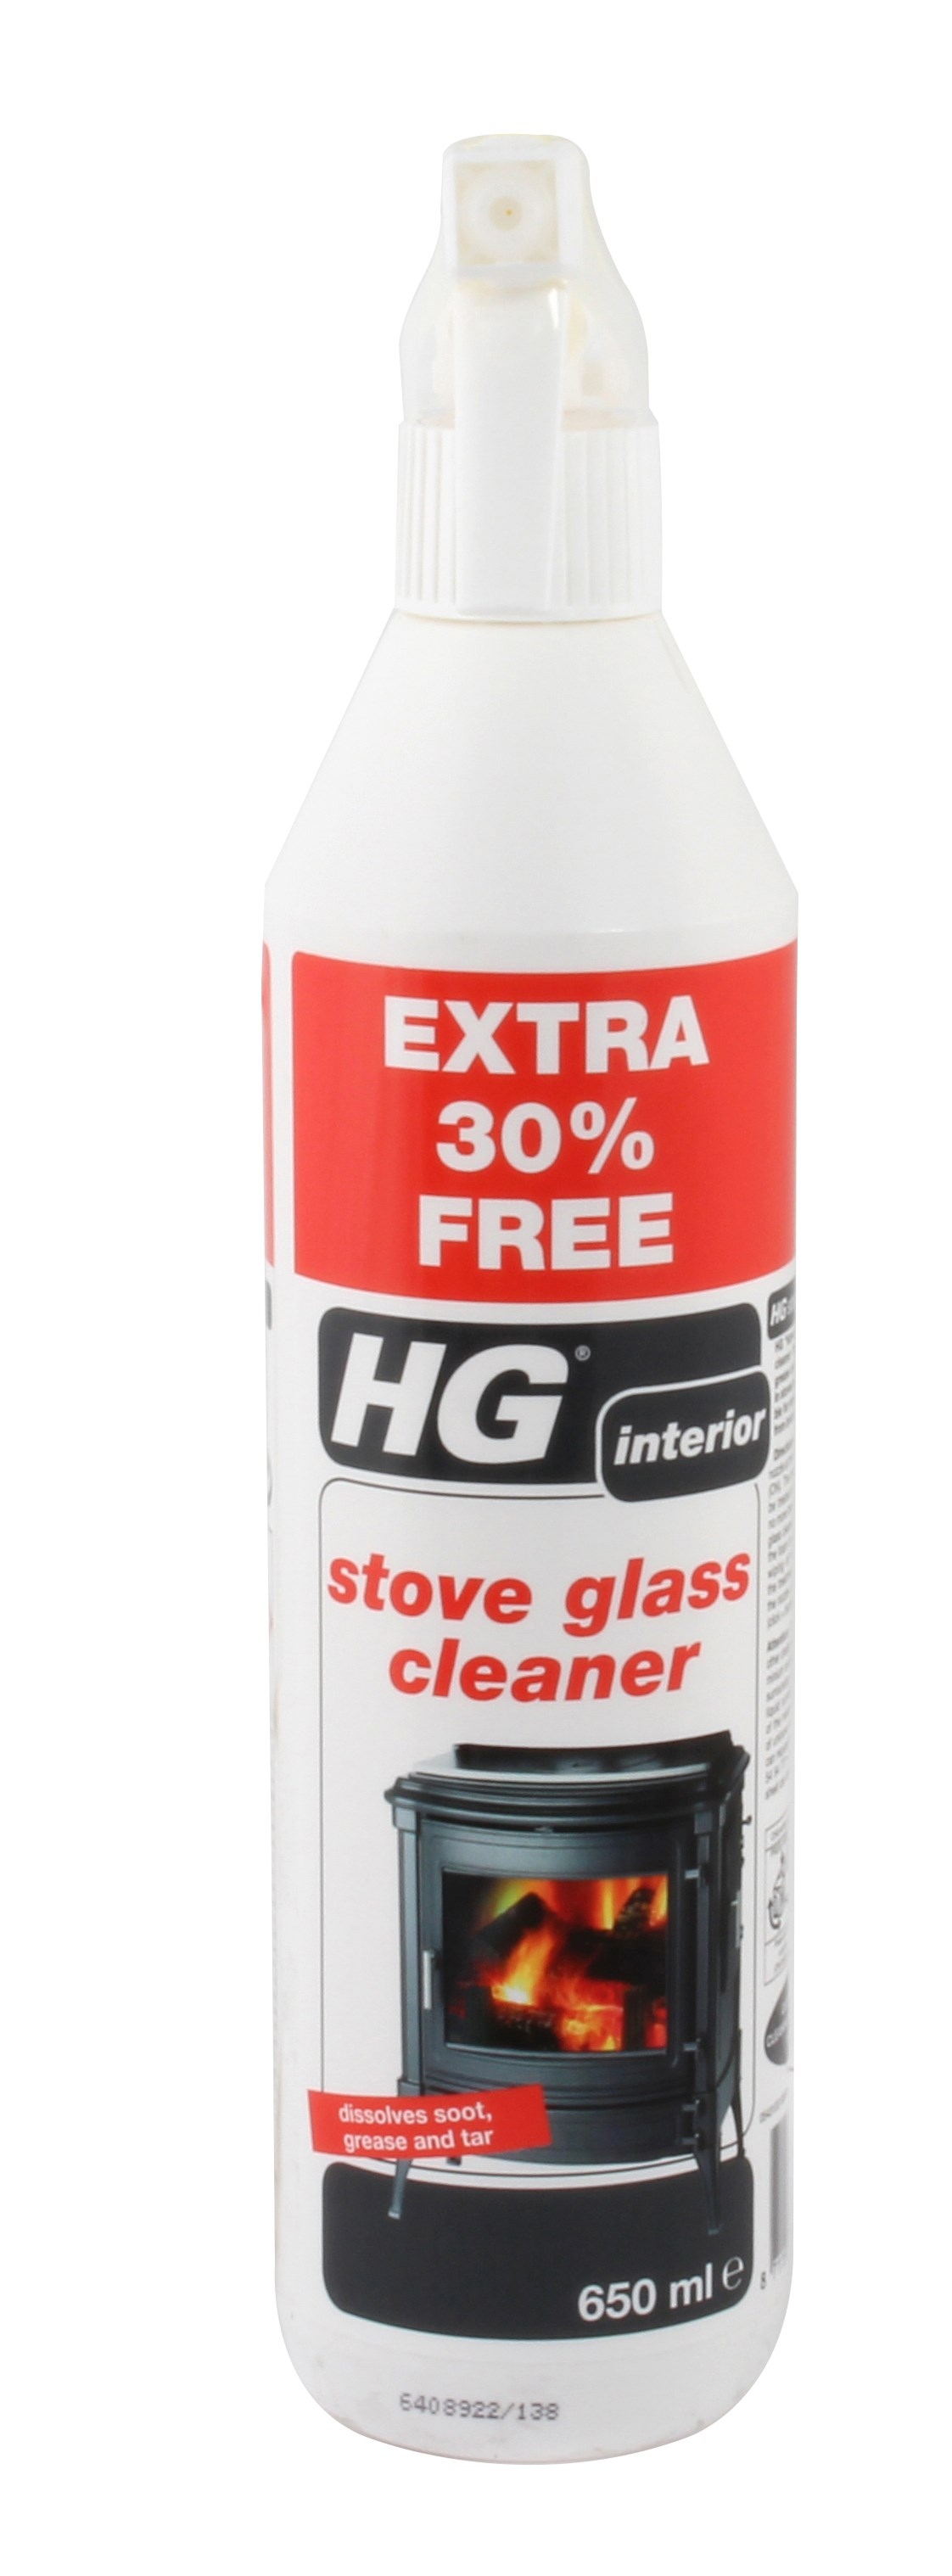 HG  Stove Glass Cleaner - 500ml + 30% Extra Free